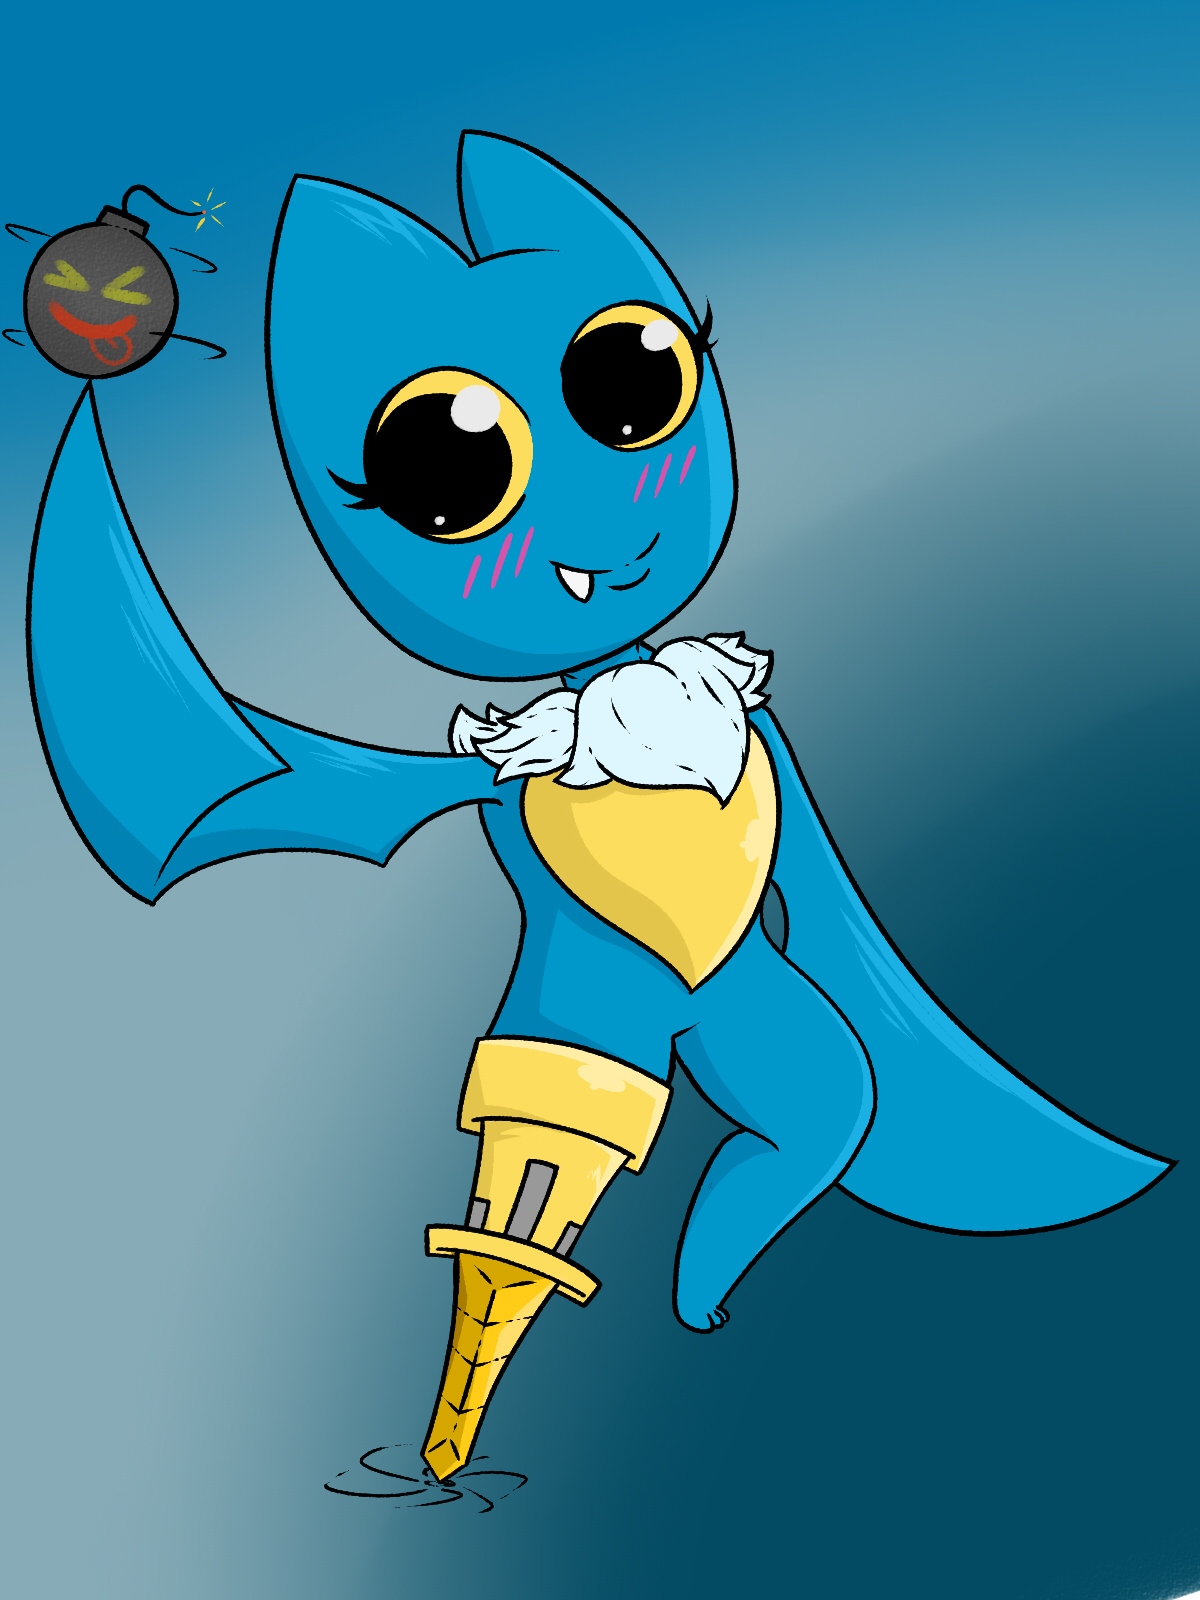 Adorabat By Mysterywhiteflame On Deviantart Deviantart is the world's largest online social community for artists and art enthusiasts, allowing people to connect through the creation and sharing of art. adorabat by mysterywhiteflame on deviantart